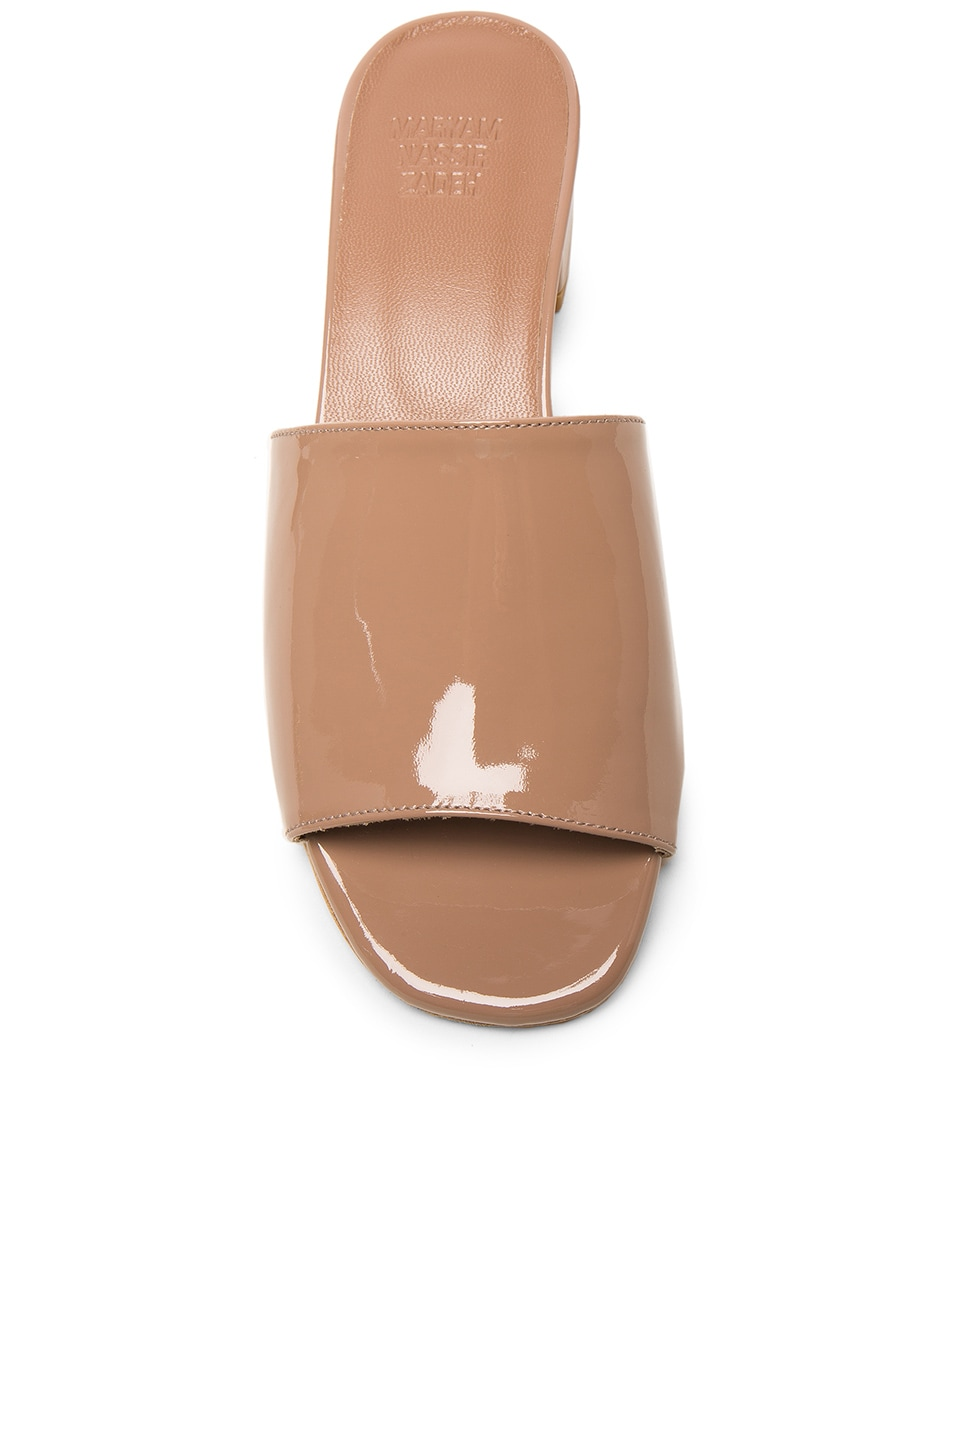 Image 4 of Maryam Nassir Zadeh Patent Leather Sophie Slide Heels in Taupe Patent